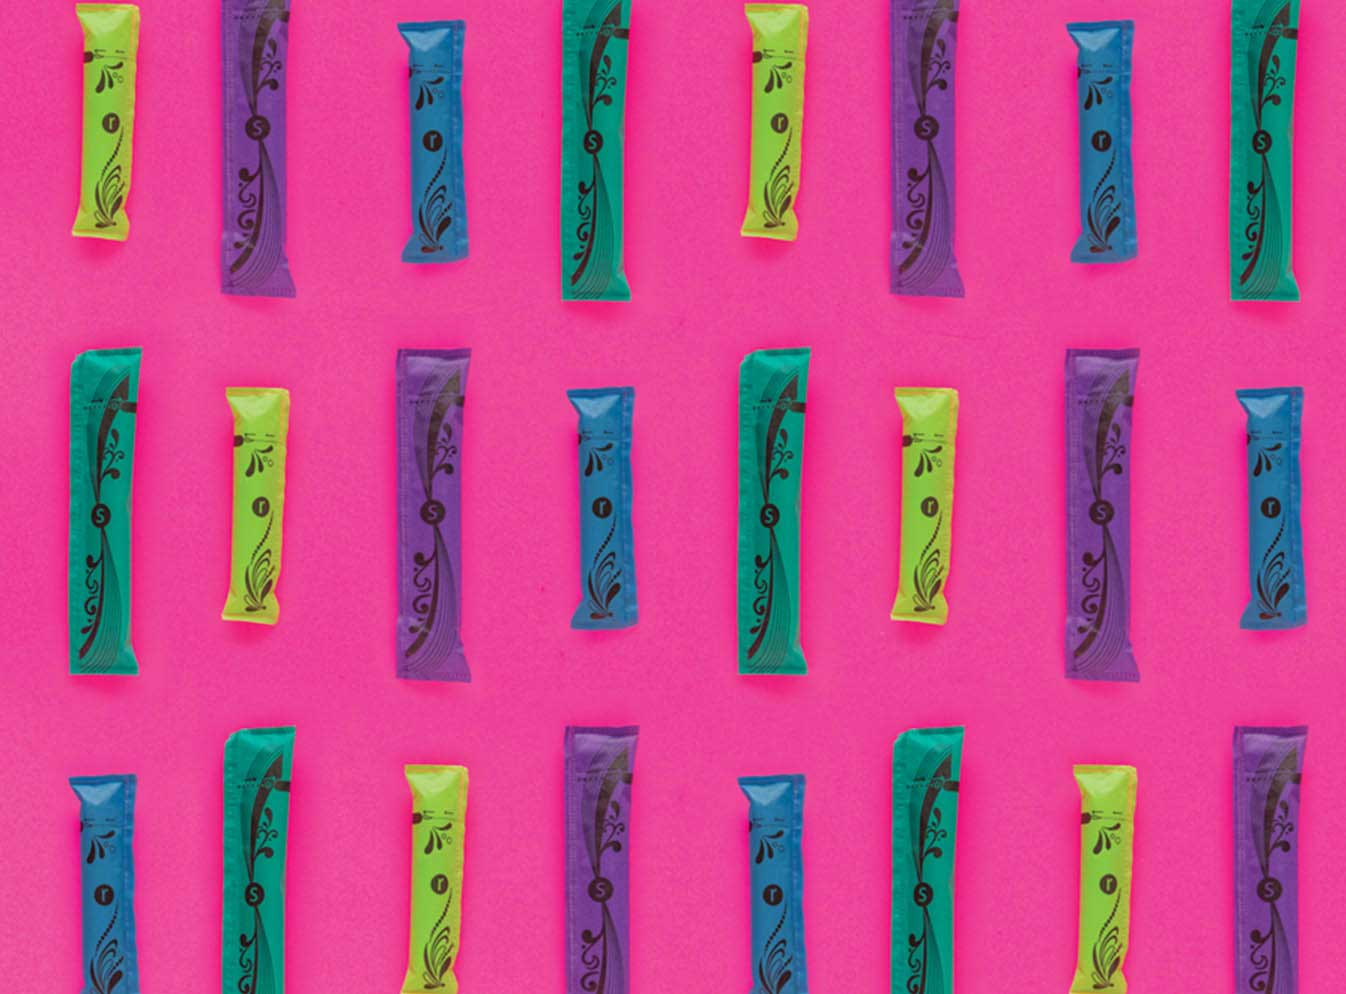 Row of tampons on pink background